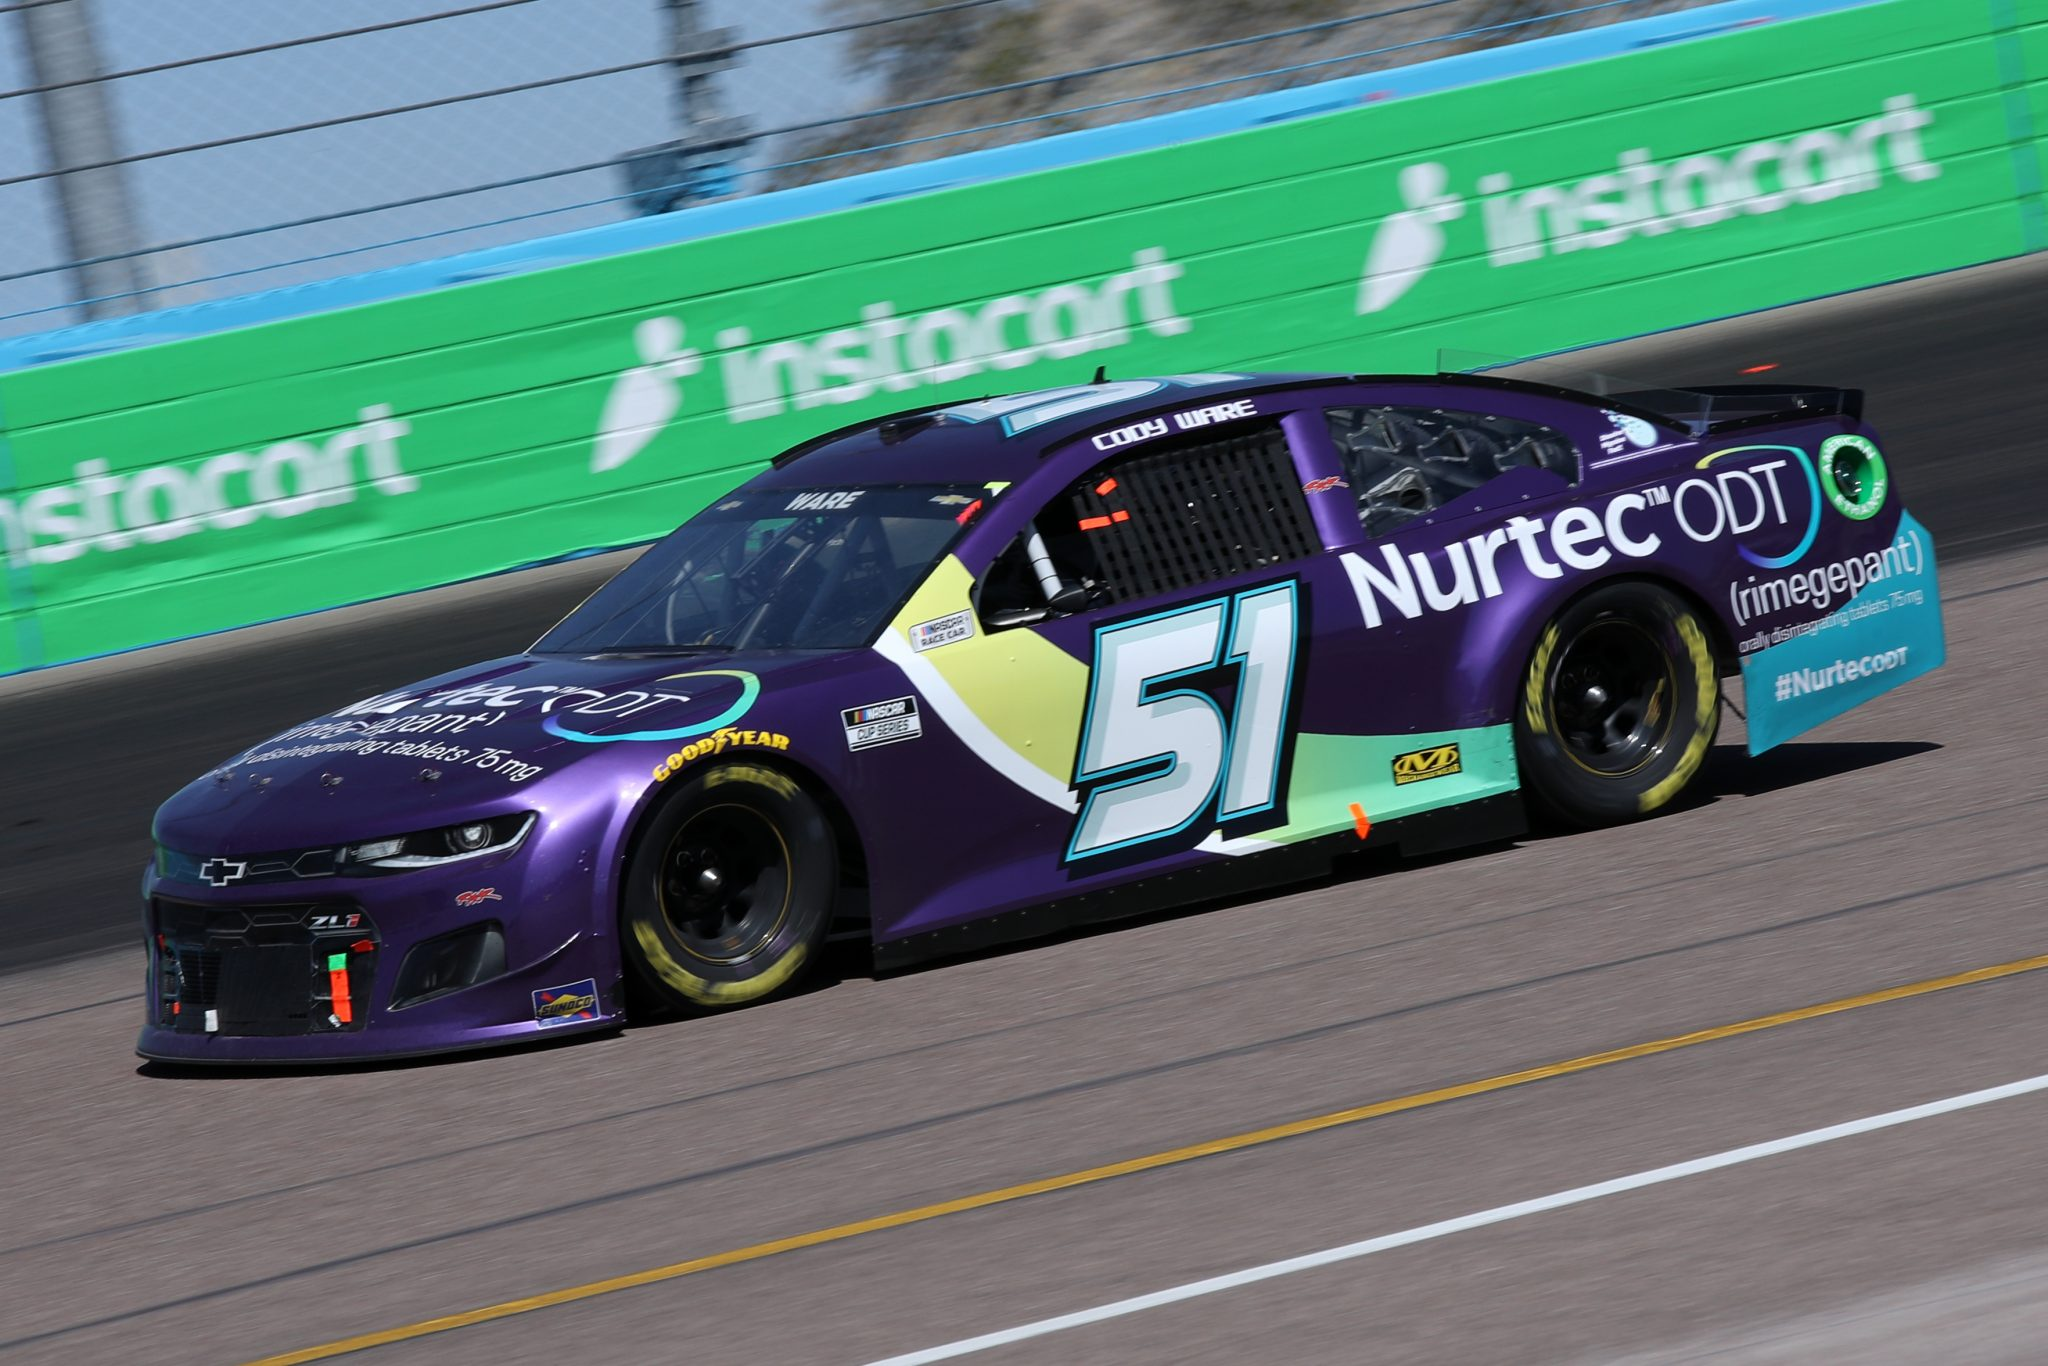 AVONDALE, ARIZONA - MARCH 14: Cody Ware, driver of the #51 Nurtec ODT Chevrolet, drives during the NASCAR Cup Series Instacart 500 at Phoenix Raceway on March 14, 2021 in Avondale, Arizona. (Photo by Sean Gardner/Getty Images) | Getty Images